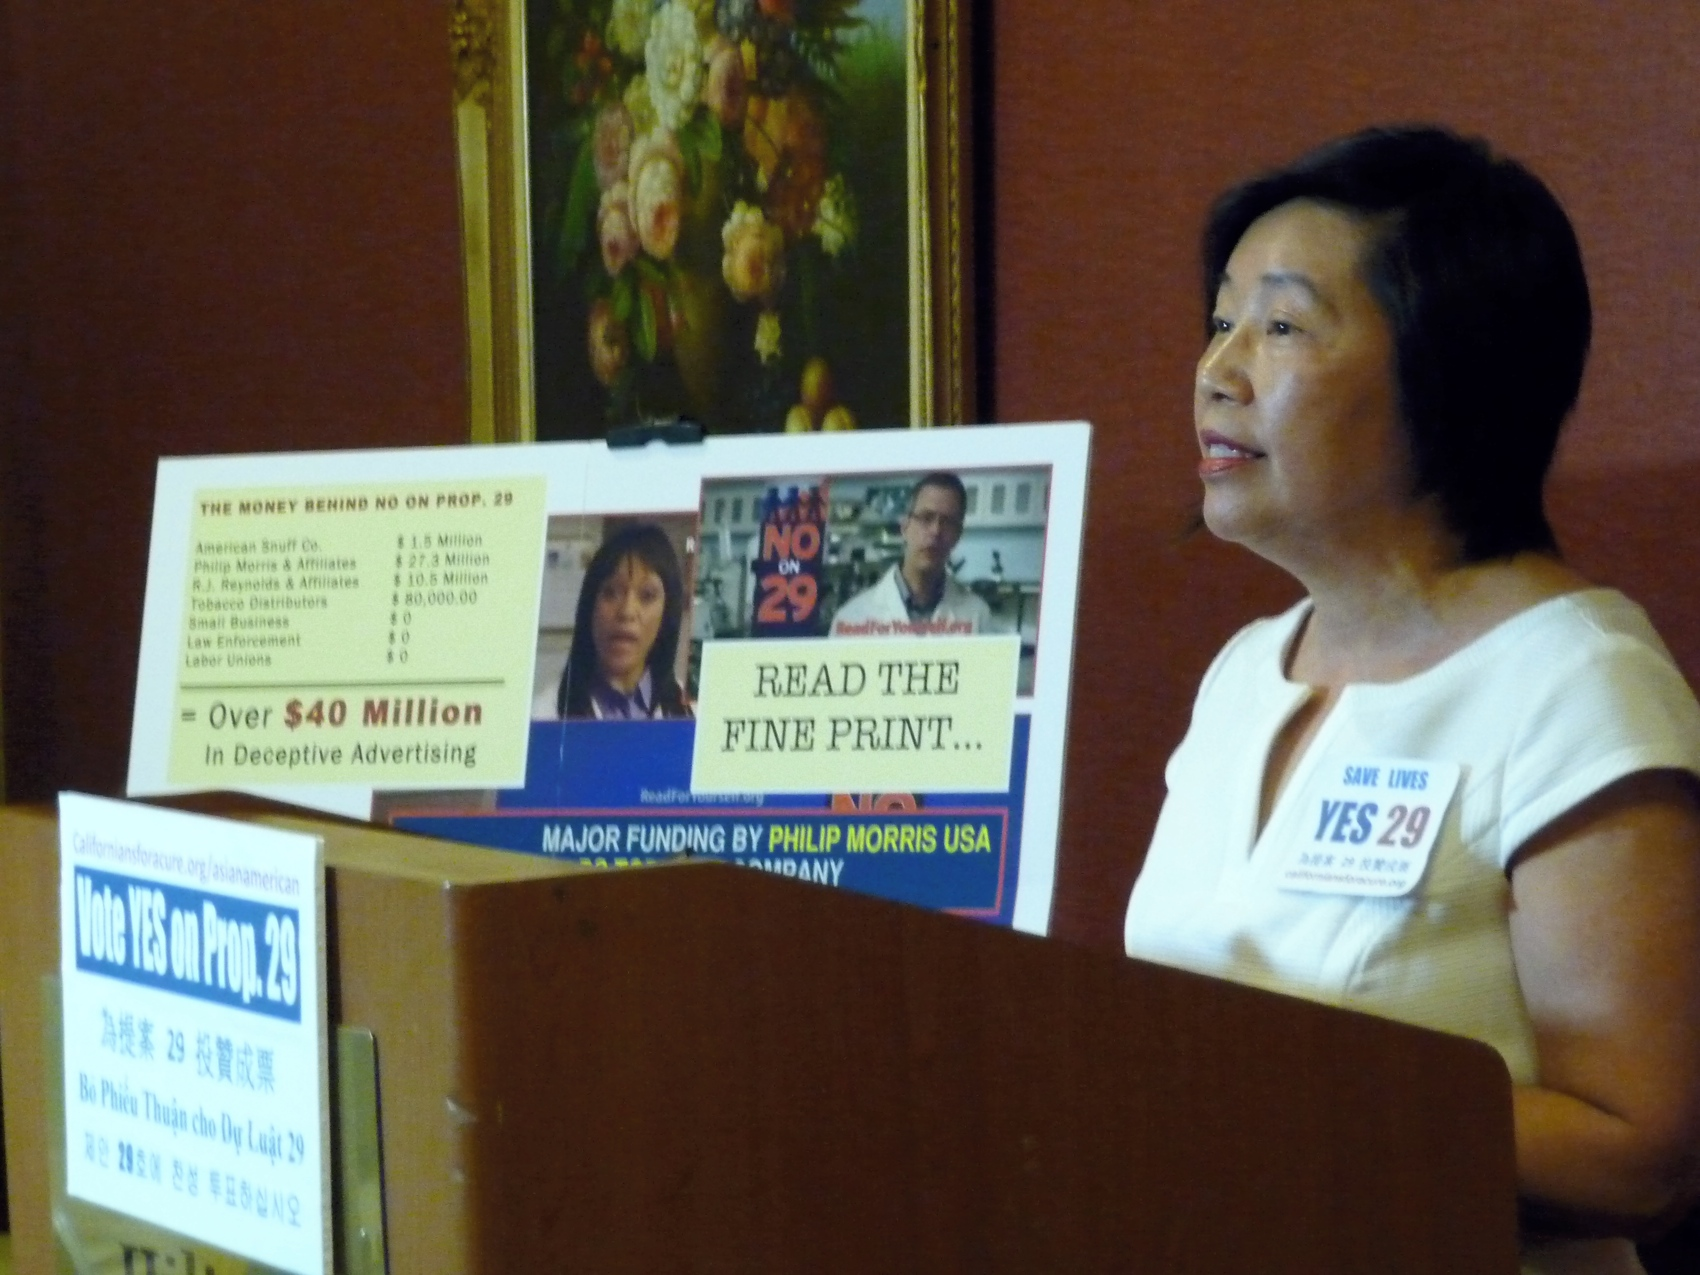 AAPI Groups Urge Passage of Proposition 29 - California Cancer Research Act